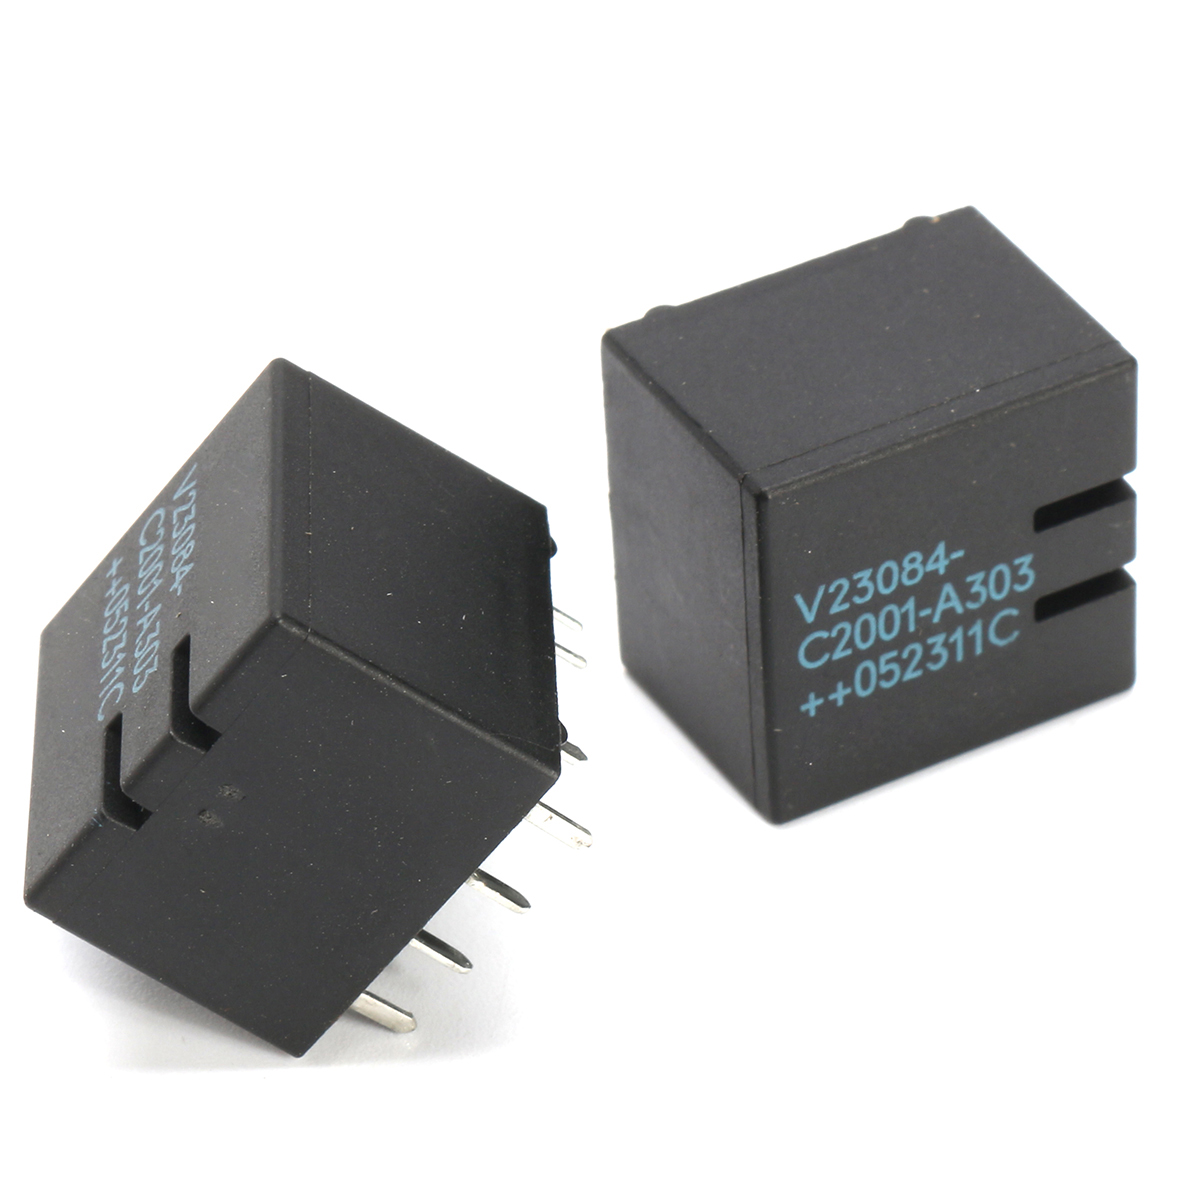 2pcs V23084 C2001 A303 Automotive Relay For Bmw Gm5 Module Sale Banggood Com Sold Out